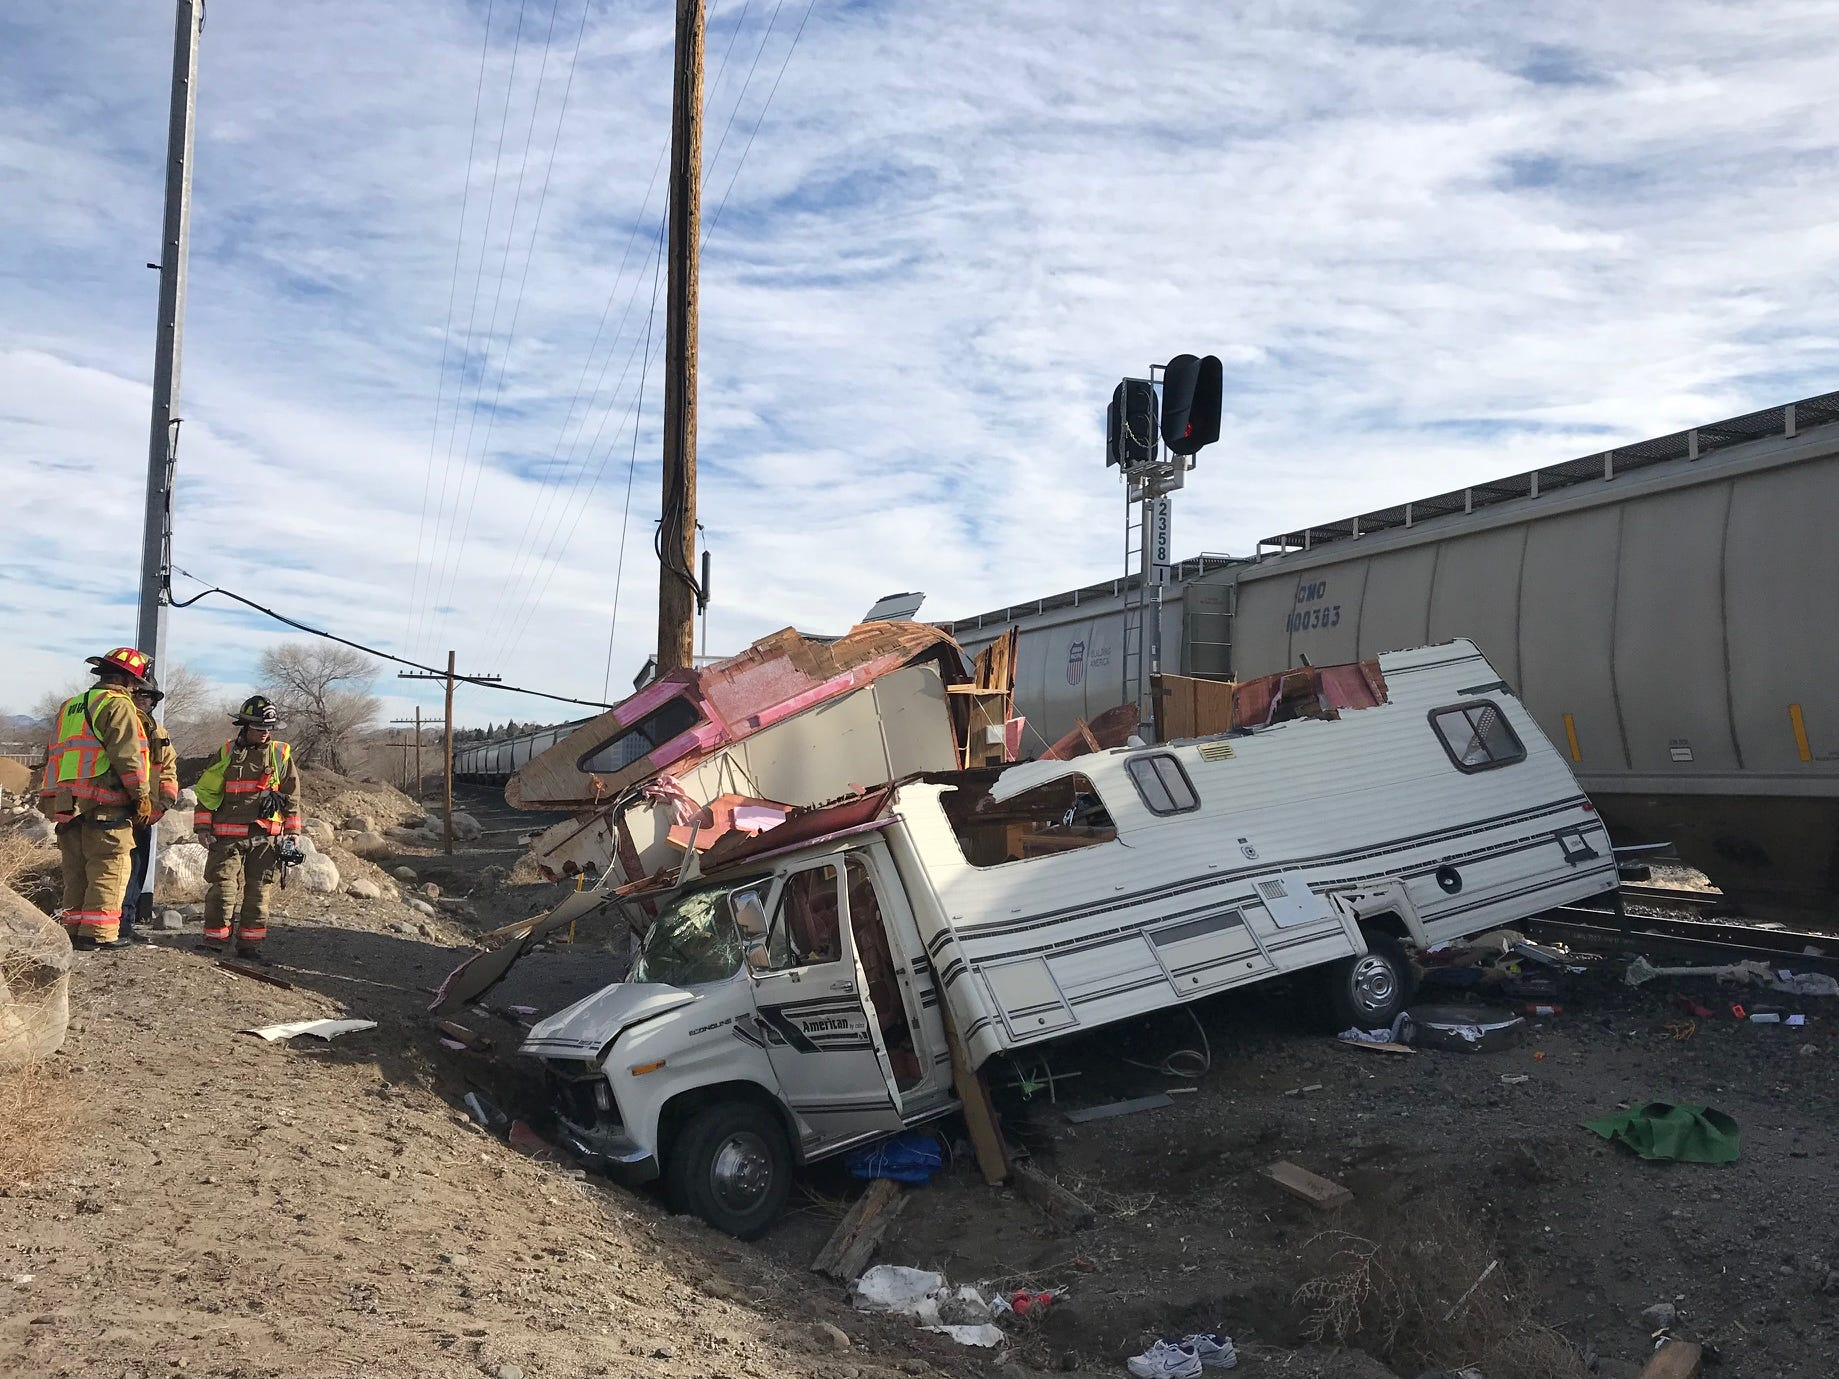 'Intentional act': 1 hurt when train, RV collide in west Reno